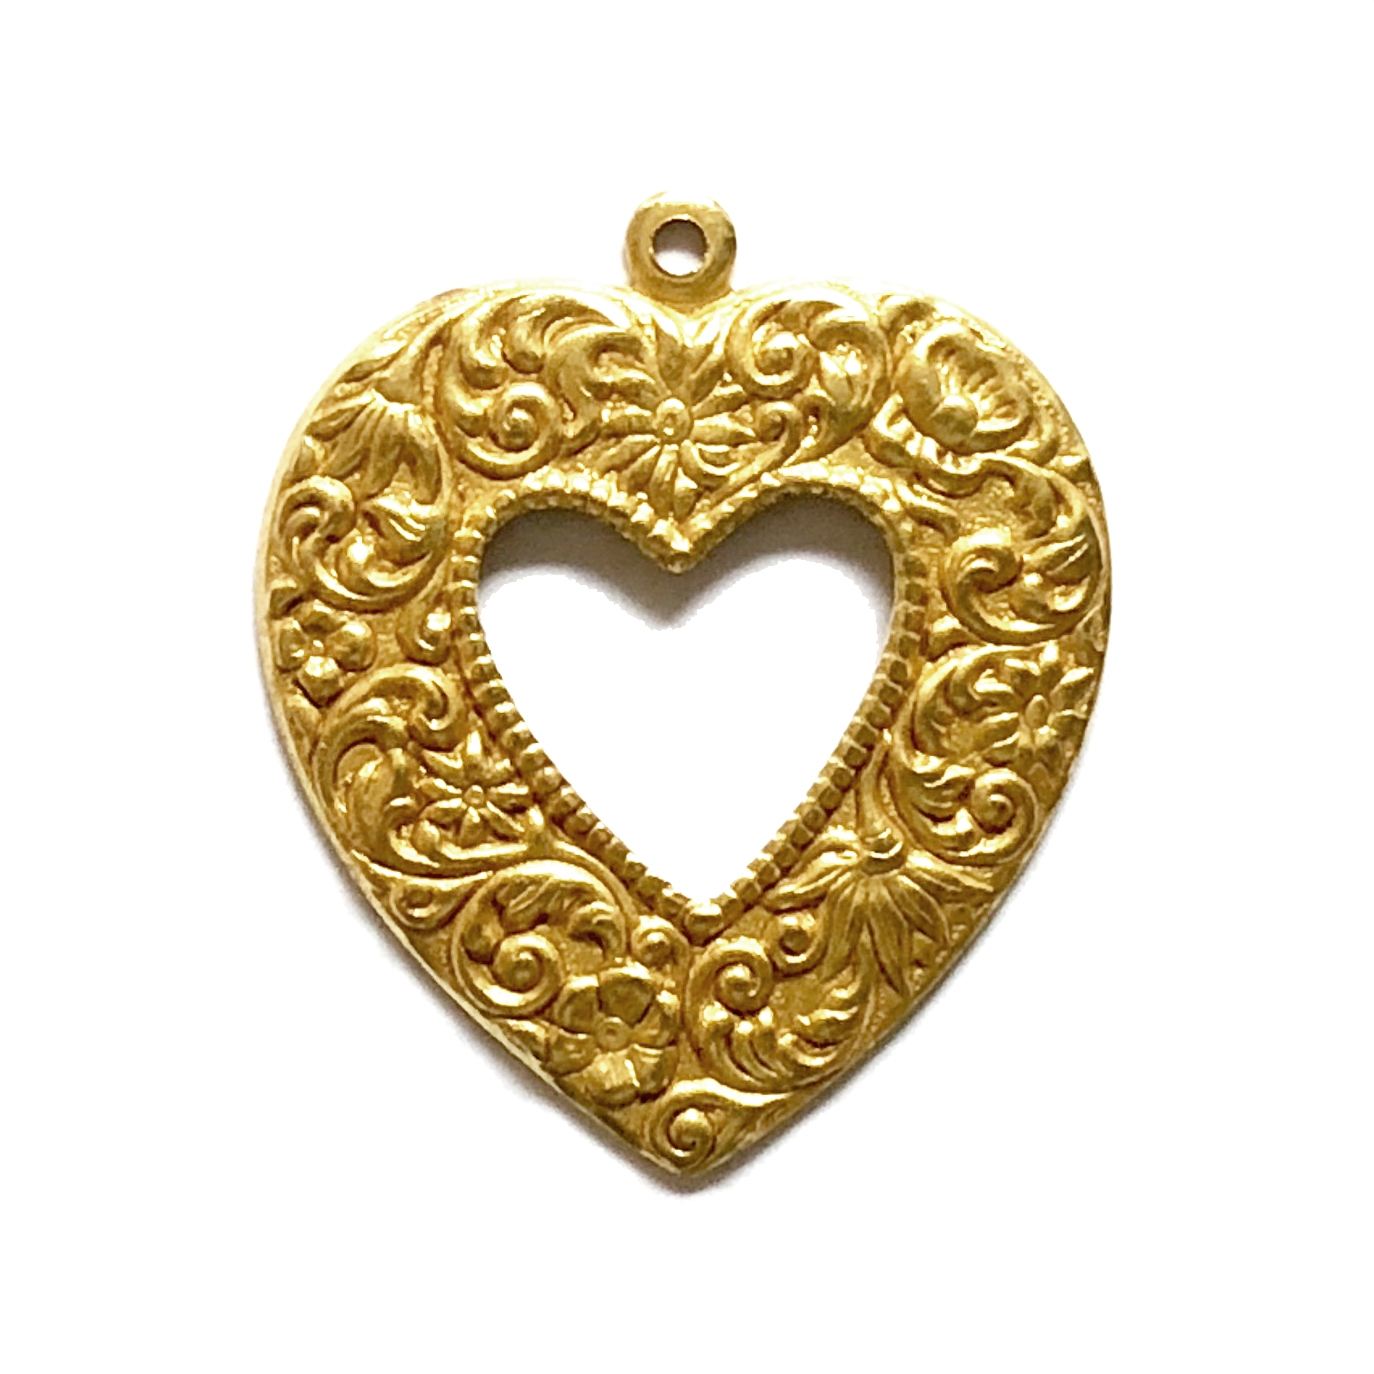 brass hearts, heart charms, classic gold, 08460, B'sue Boutiques, nickel free, US made, jewelry making, jewelry supplies, vintage jewelry supplies, open heart stamping, heart pendants, floral heart charms